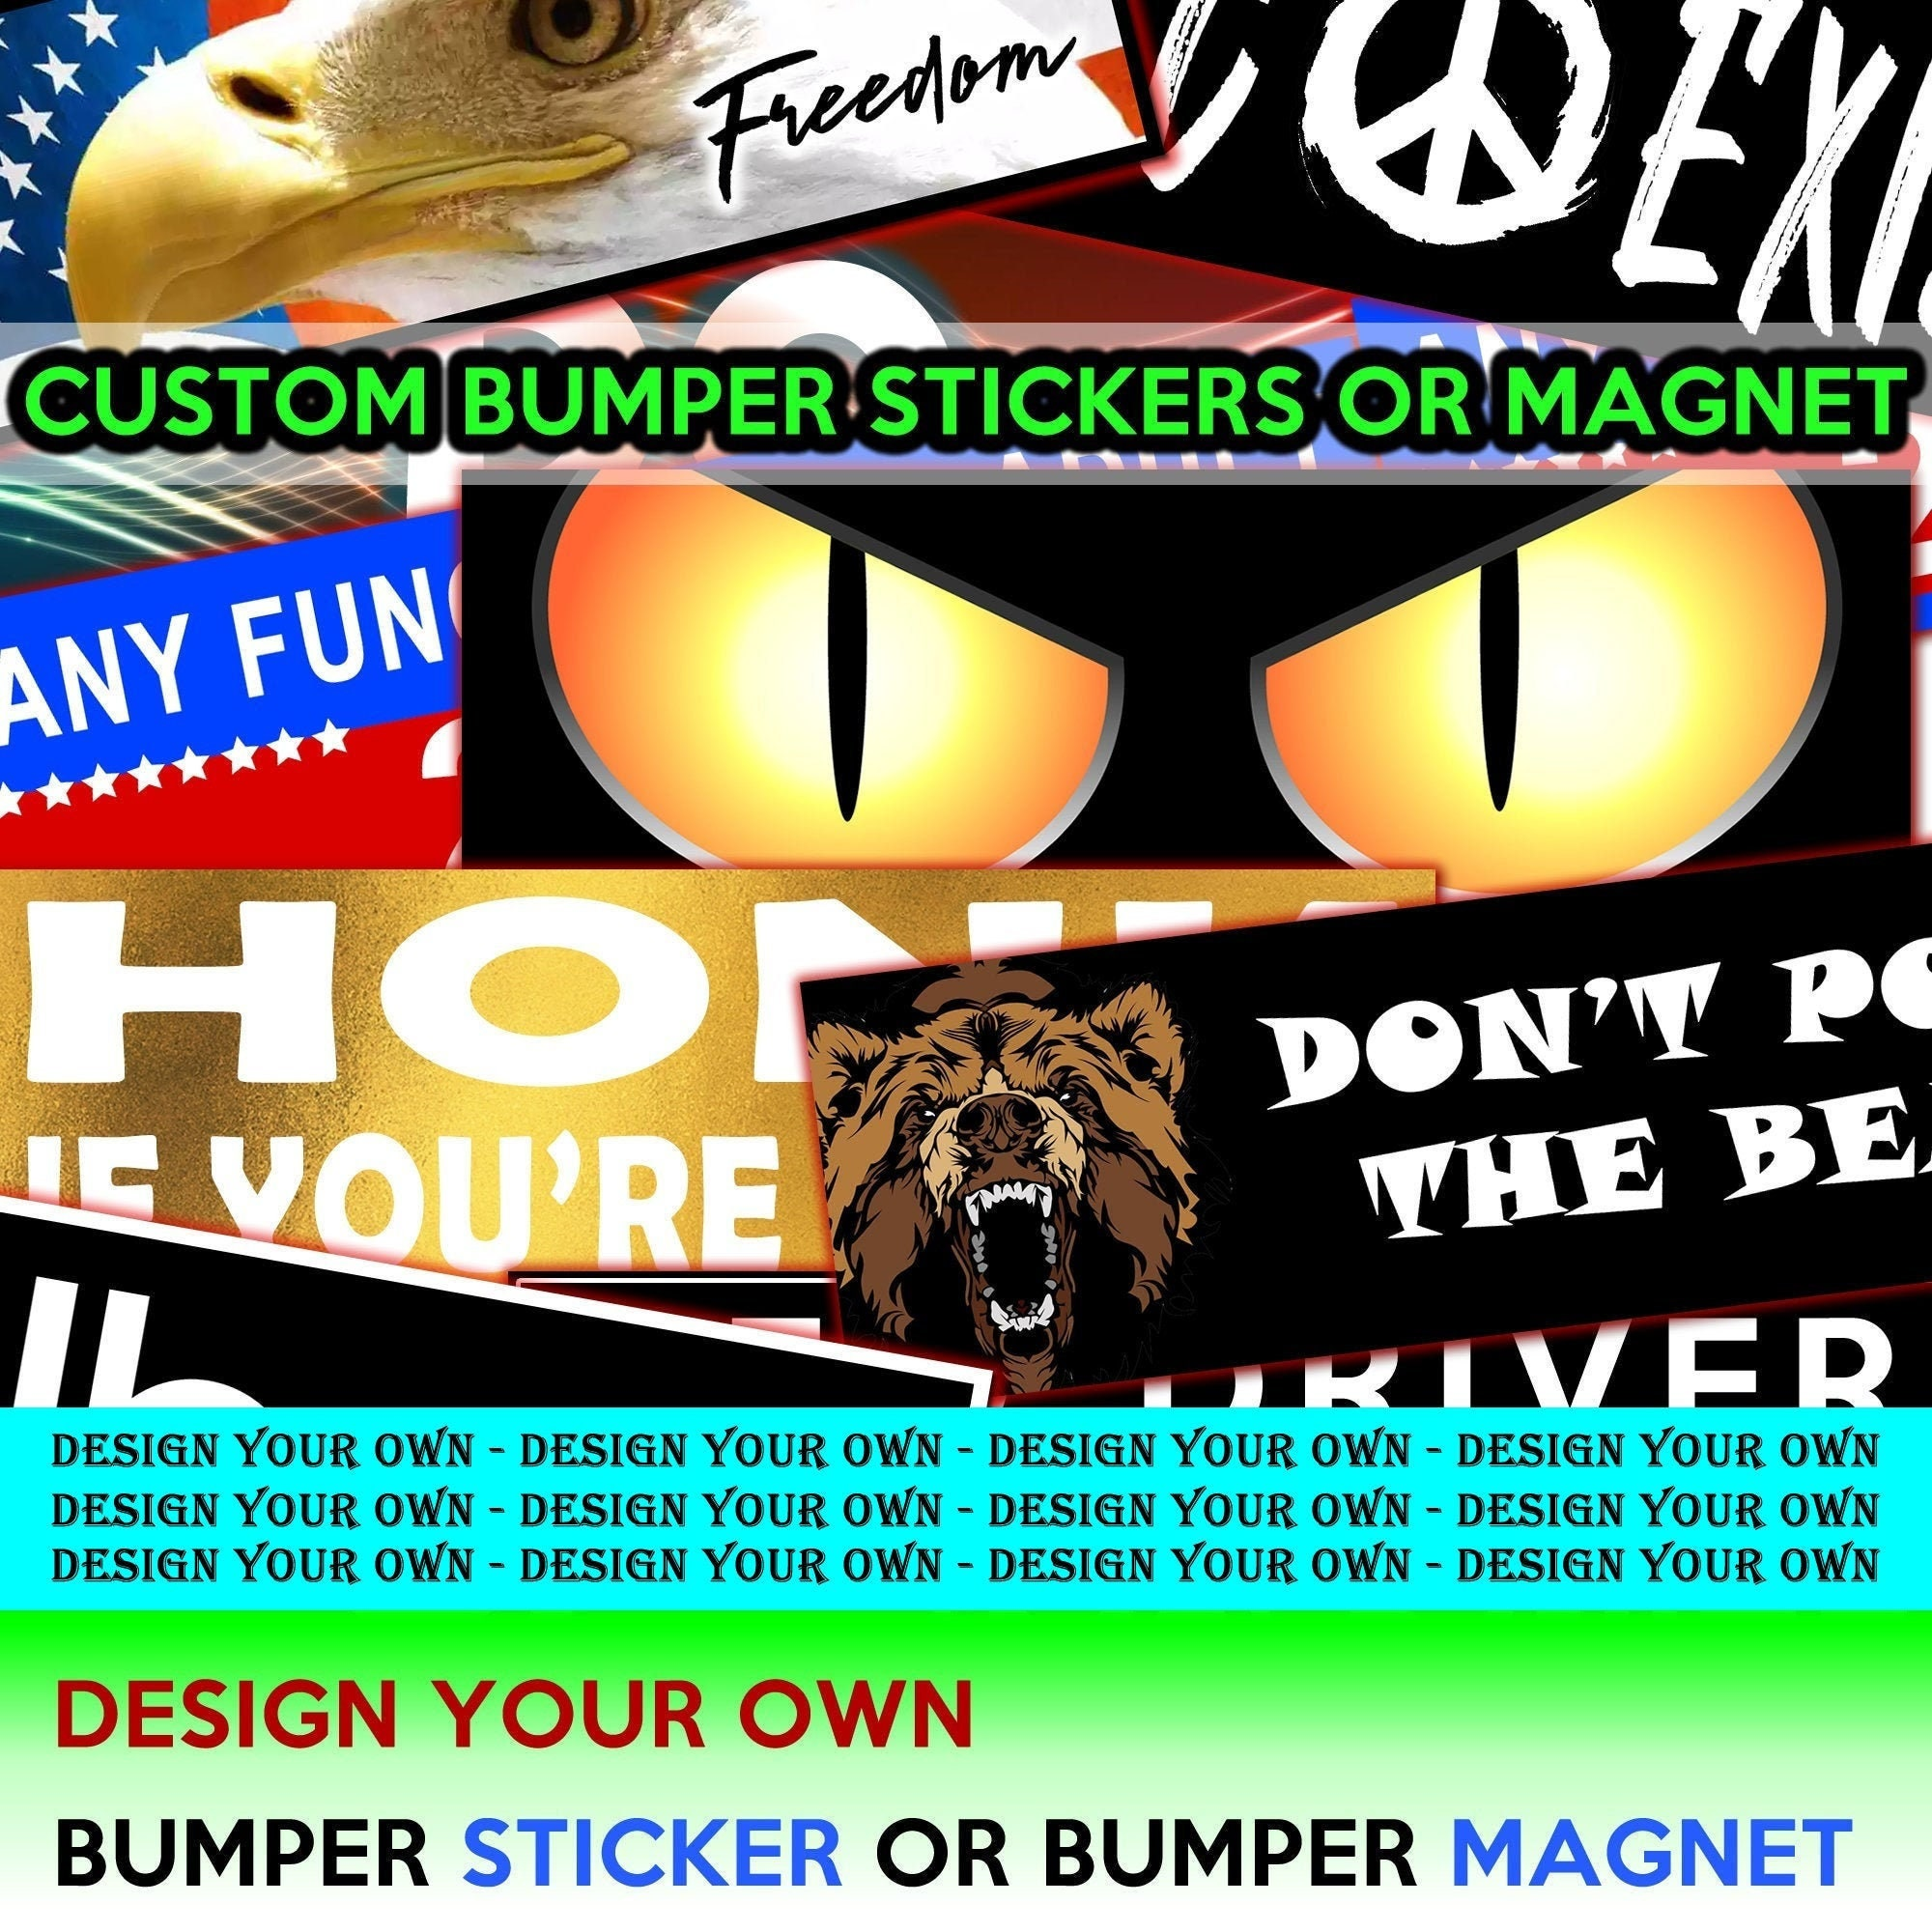 CAD$7.99 - You're So Close You Might As Well Get In 10 x 3 Bumper Sticker - Custom changes and orders welcomed!